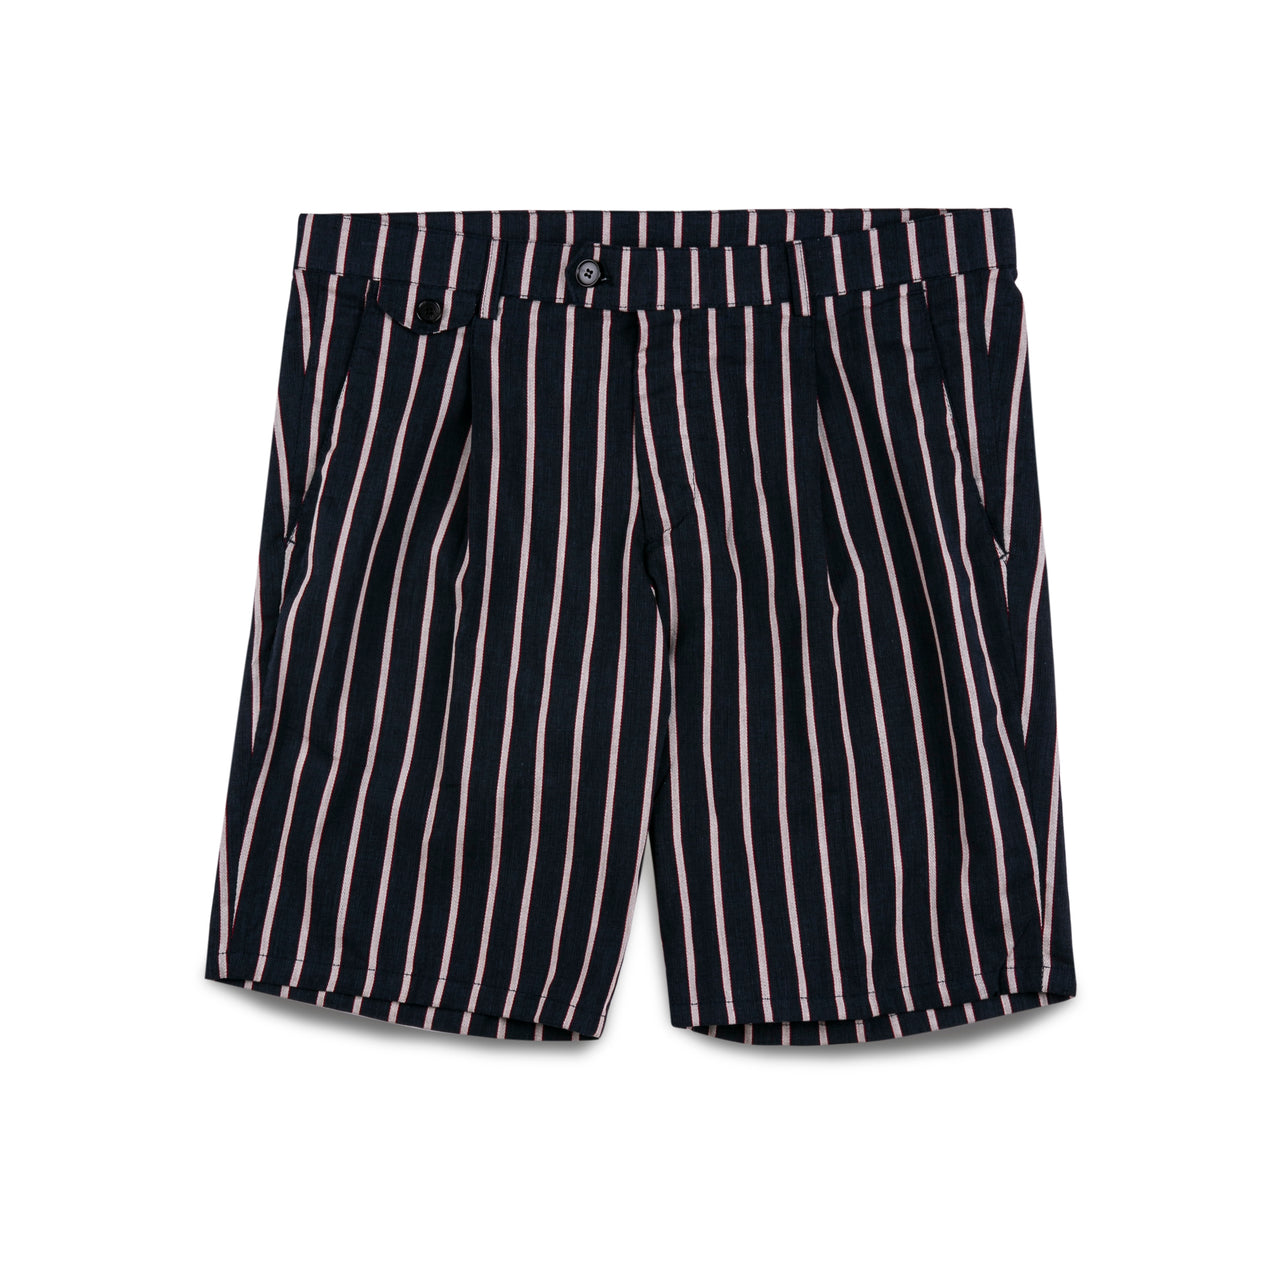 MarsPeople Striped Shorts